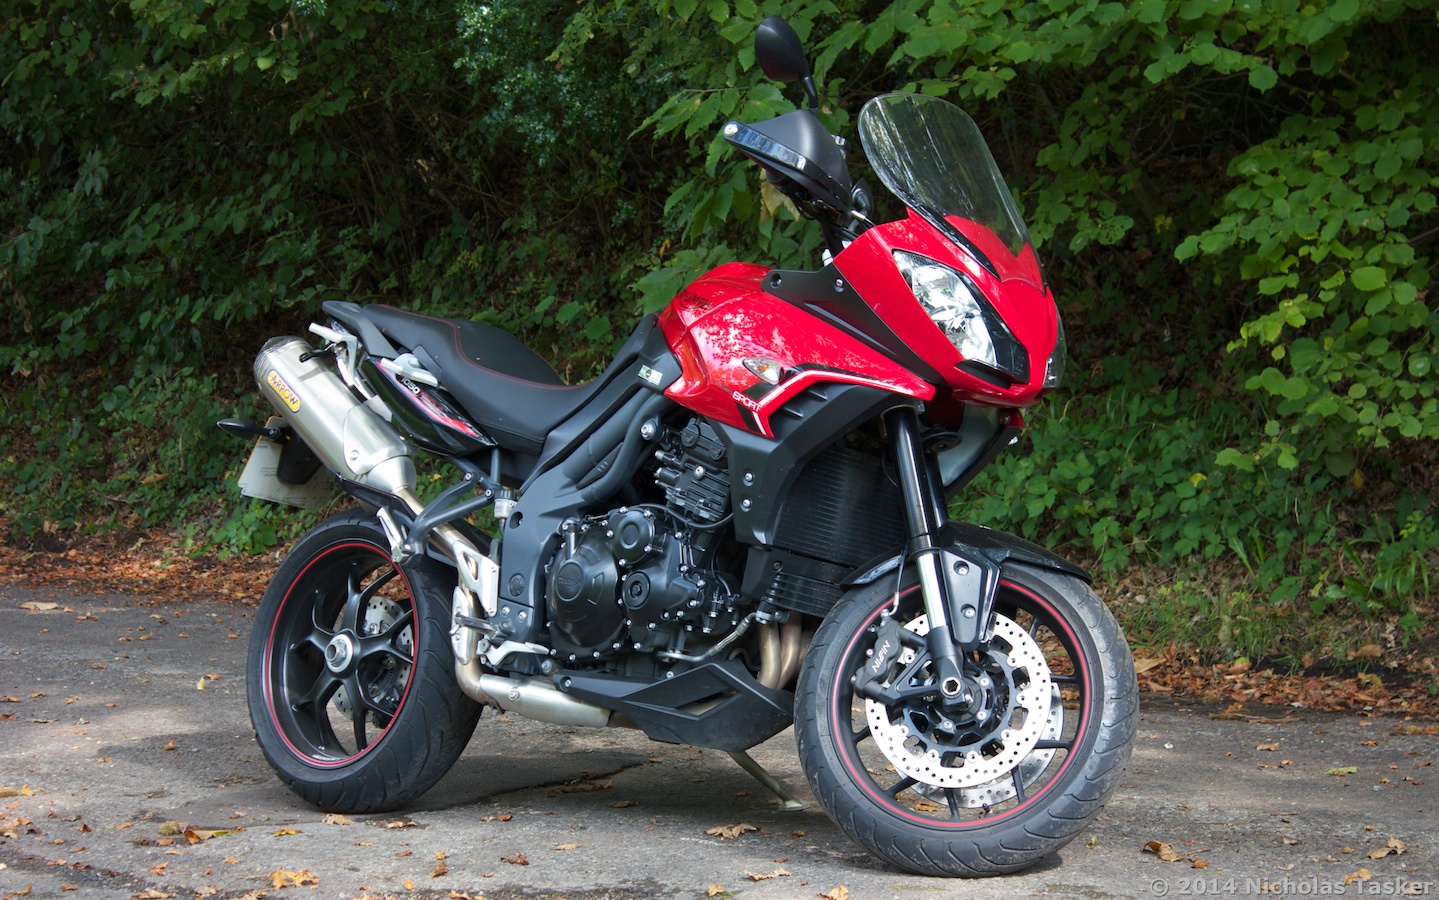 Wunderlich Navihalterung 21170 100 1 additionally Review 2014 Triumph Tiger Sport furthermore Touring Sport Scotland Honda Cbr650f together with 7648 0 6 4 tr 206 20r 20tiger 20650 Bjorn 20Svengjerde 20NORWAY in addition 3478 Sacoches interieures EVO pour coffres set. on triumph tiger 650